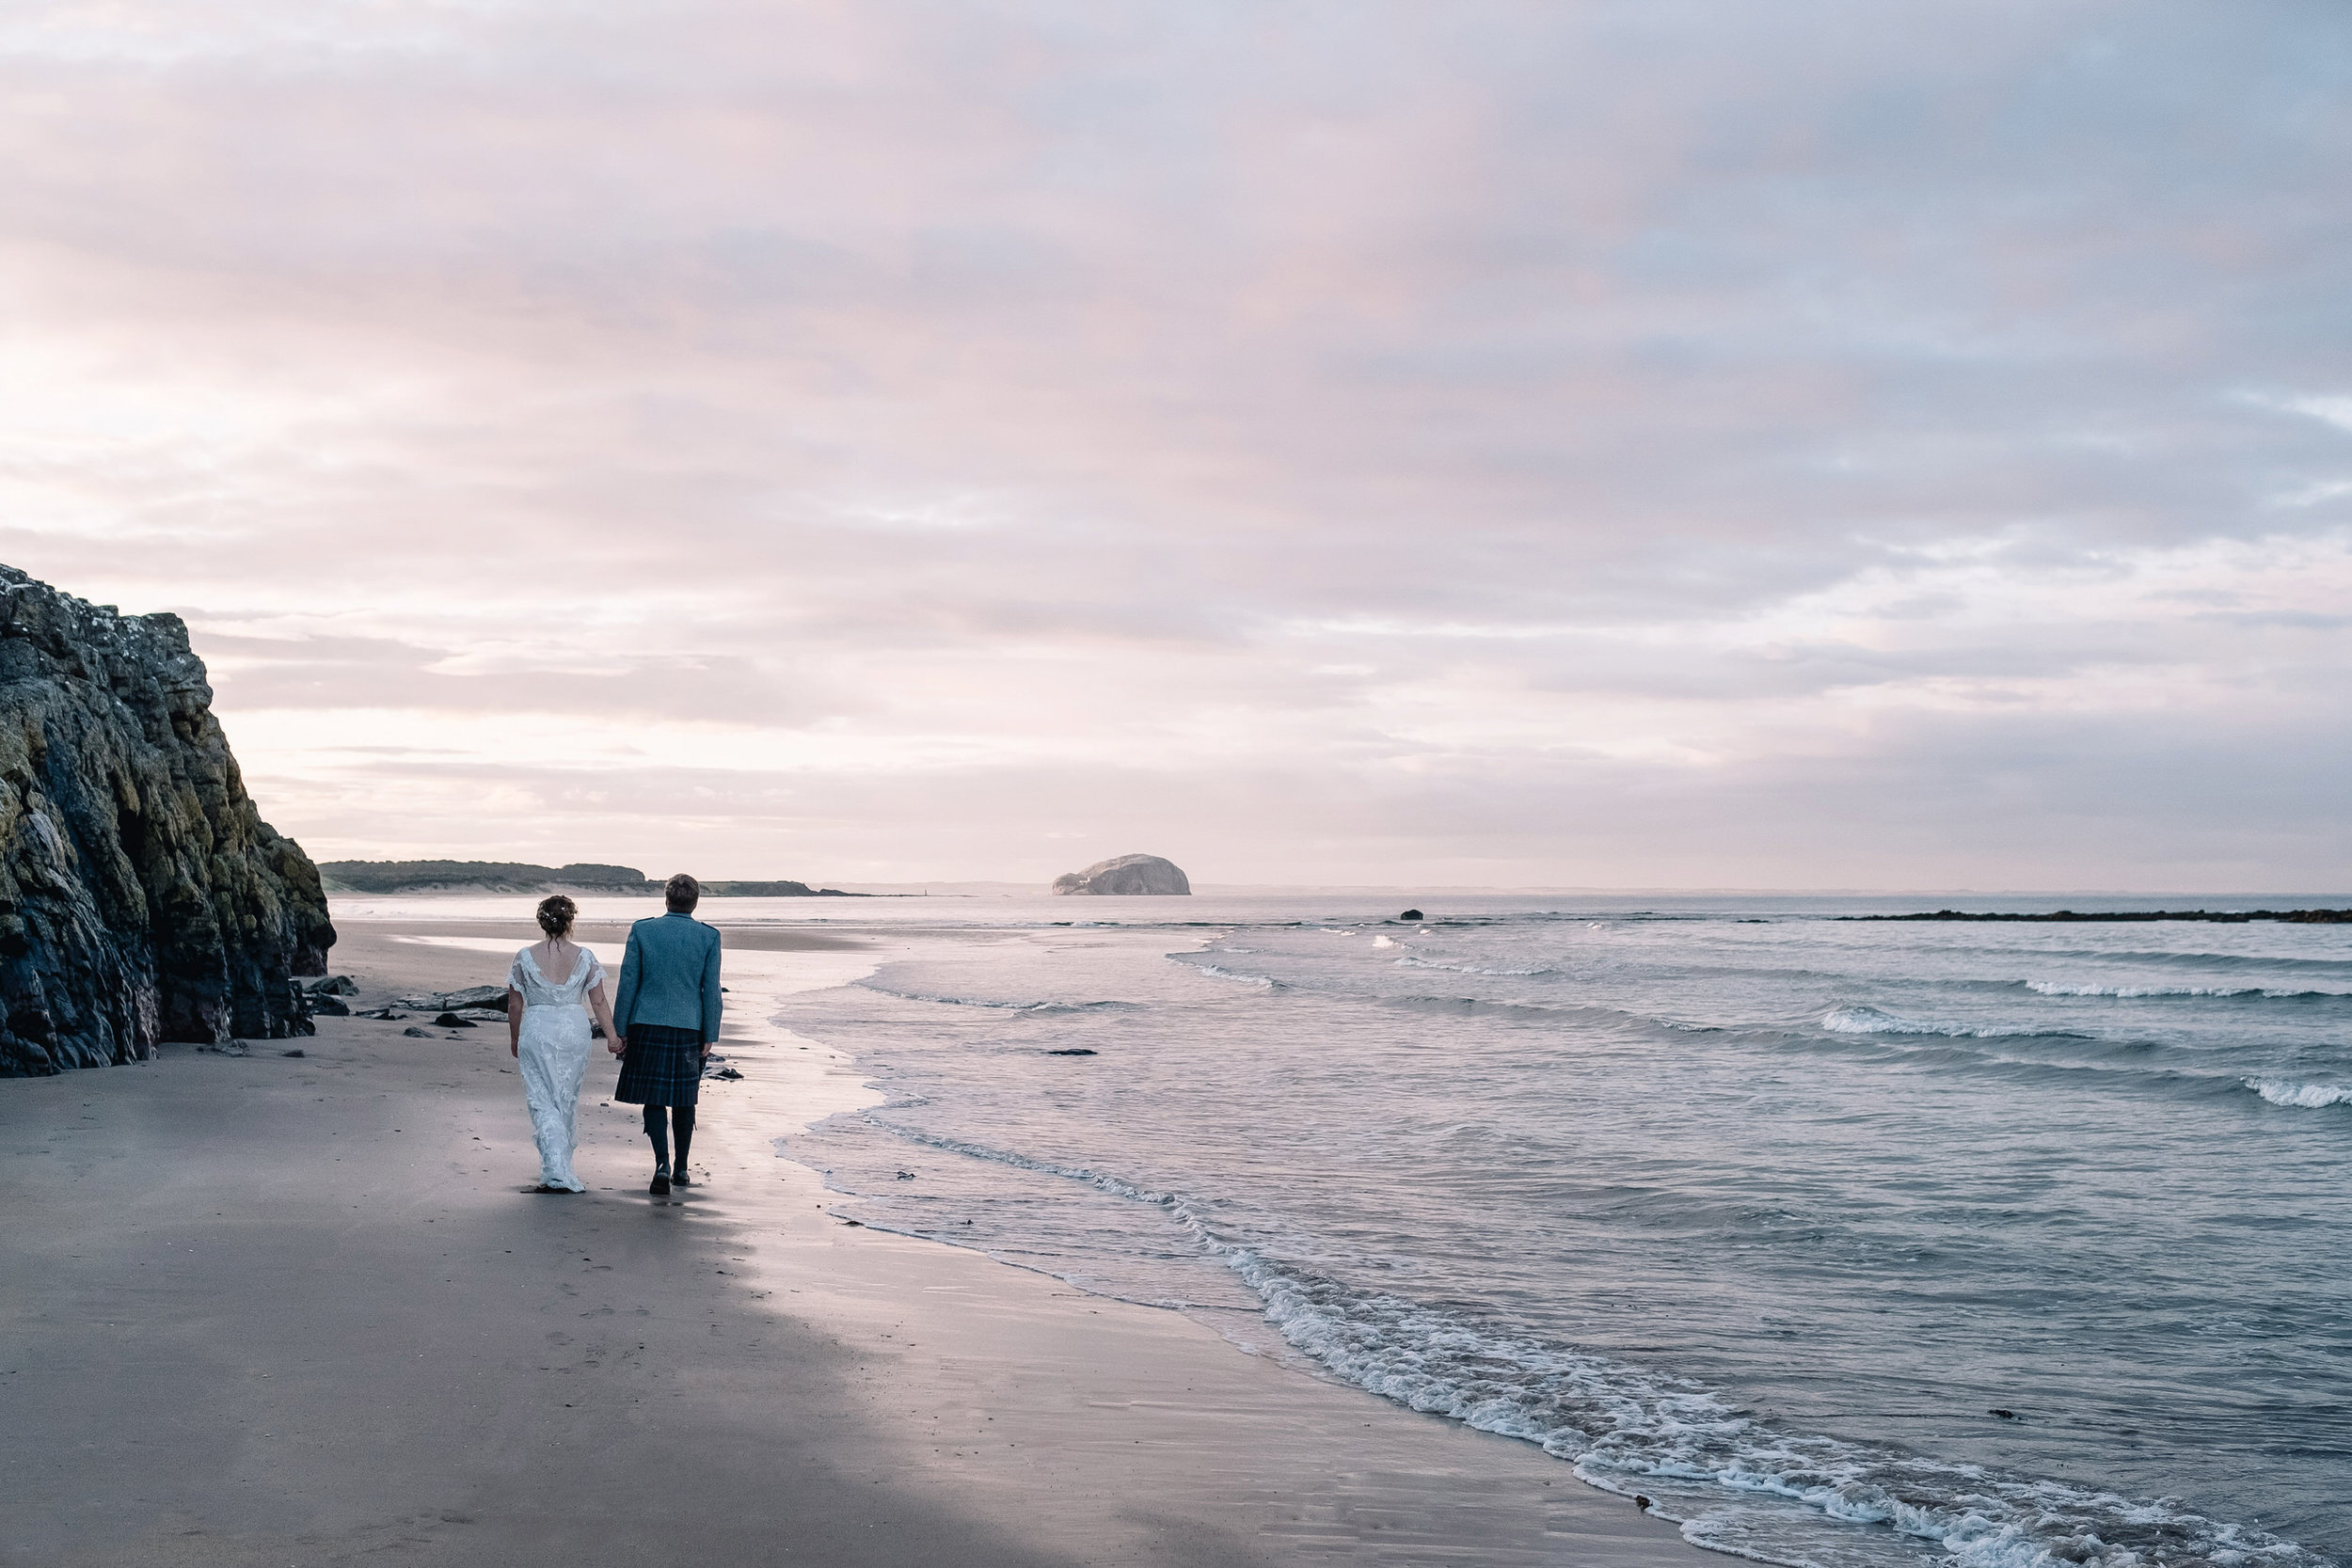 A newly married couple walk on the beach at sunset at th elog cabin at Ravensheugh.